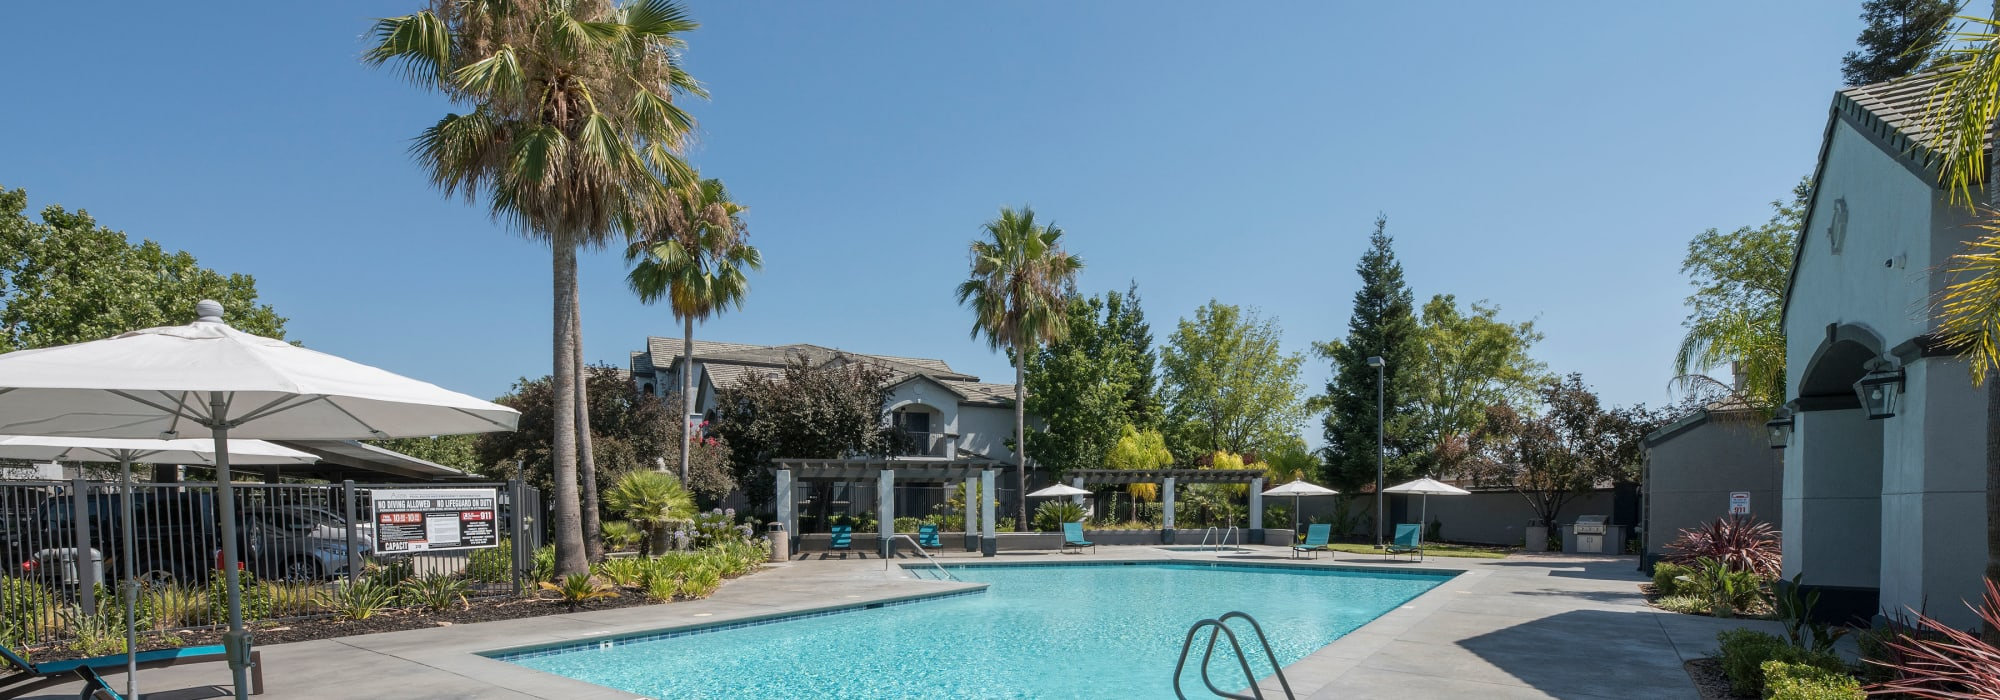 Contact us at Avion Apartments in Rancho Cordova, California